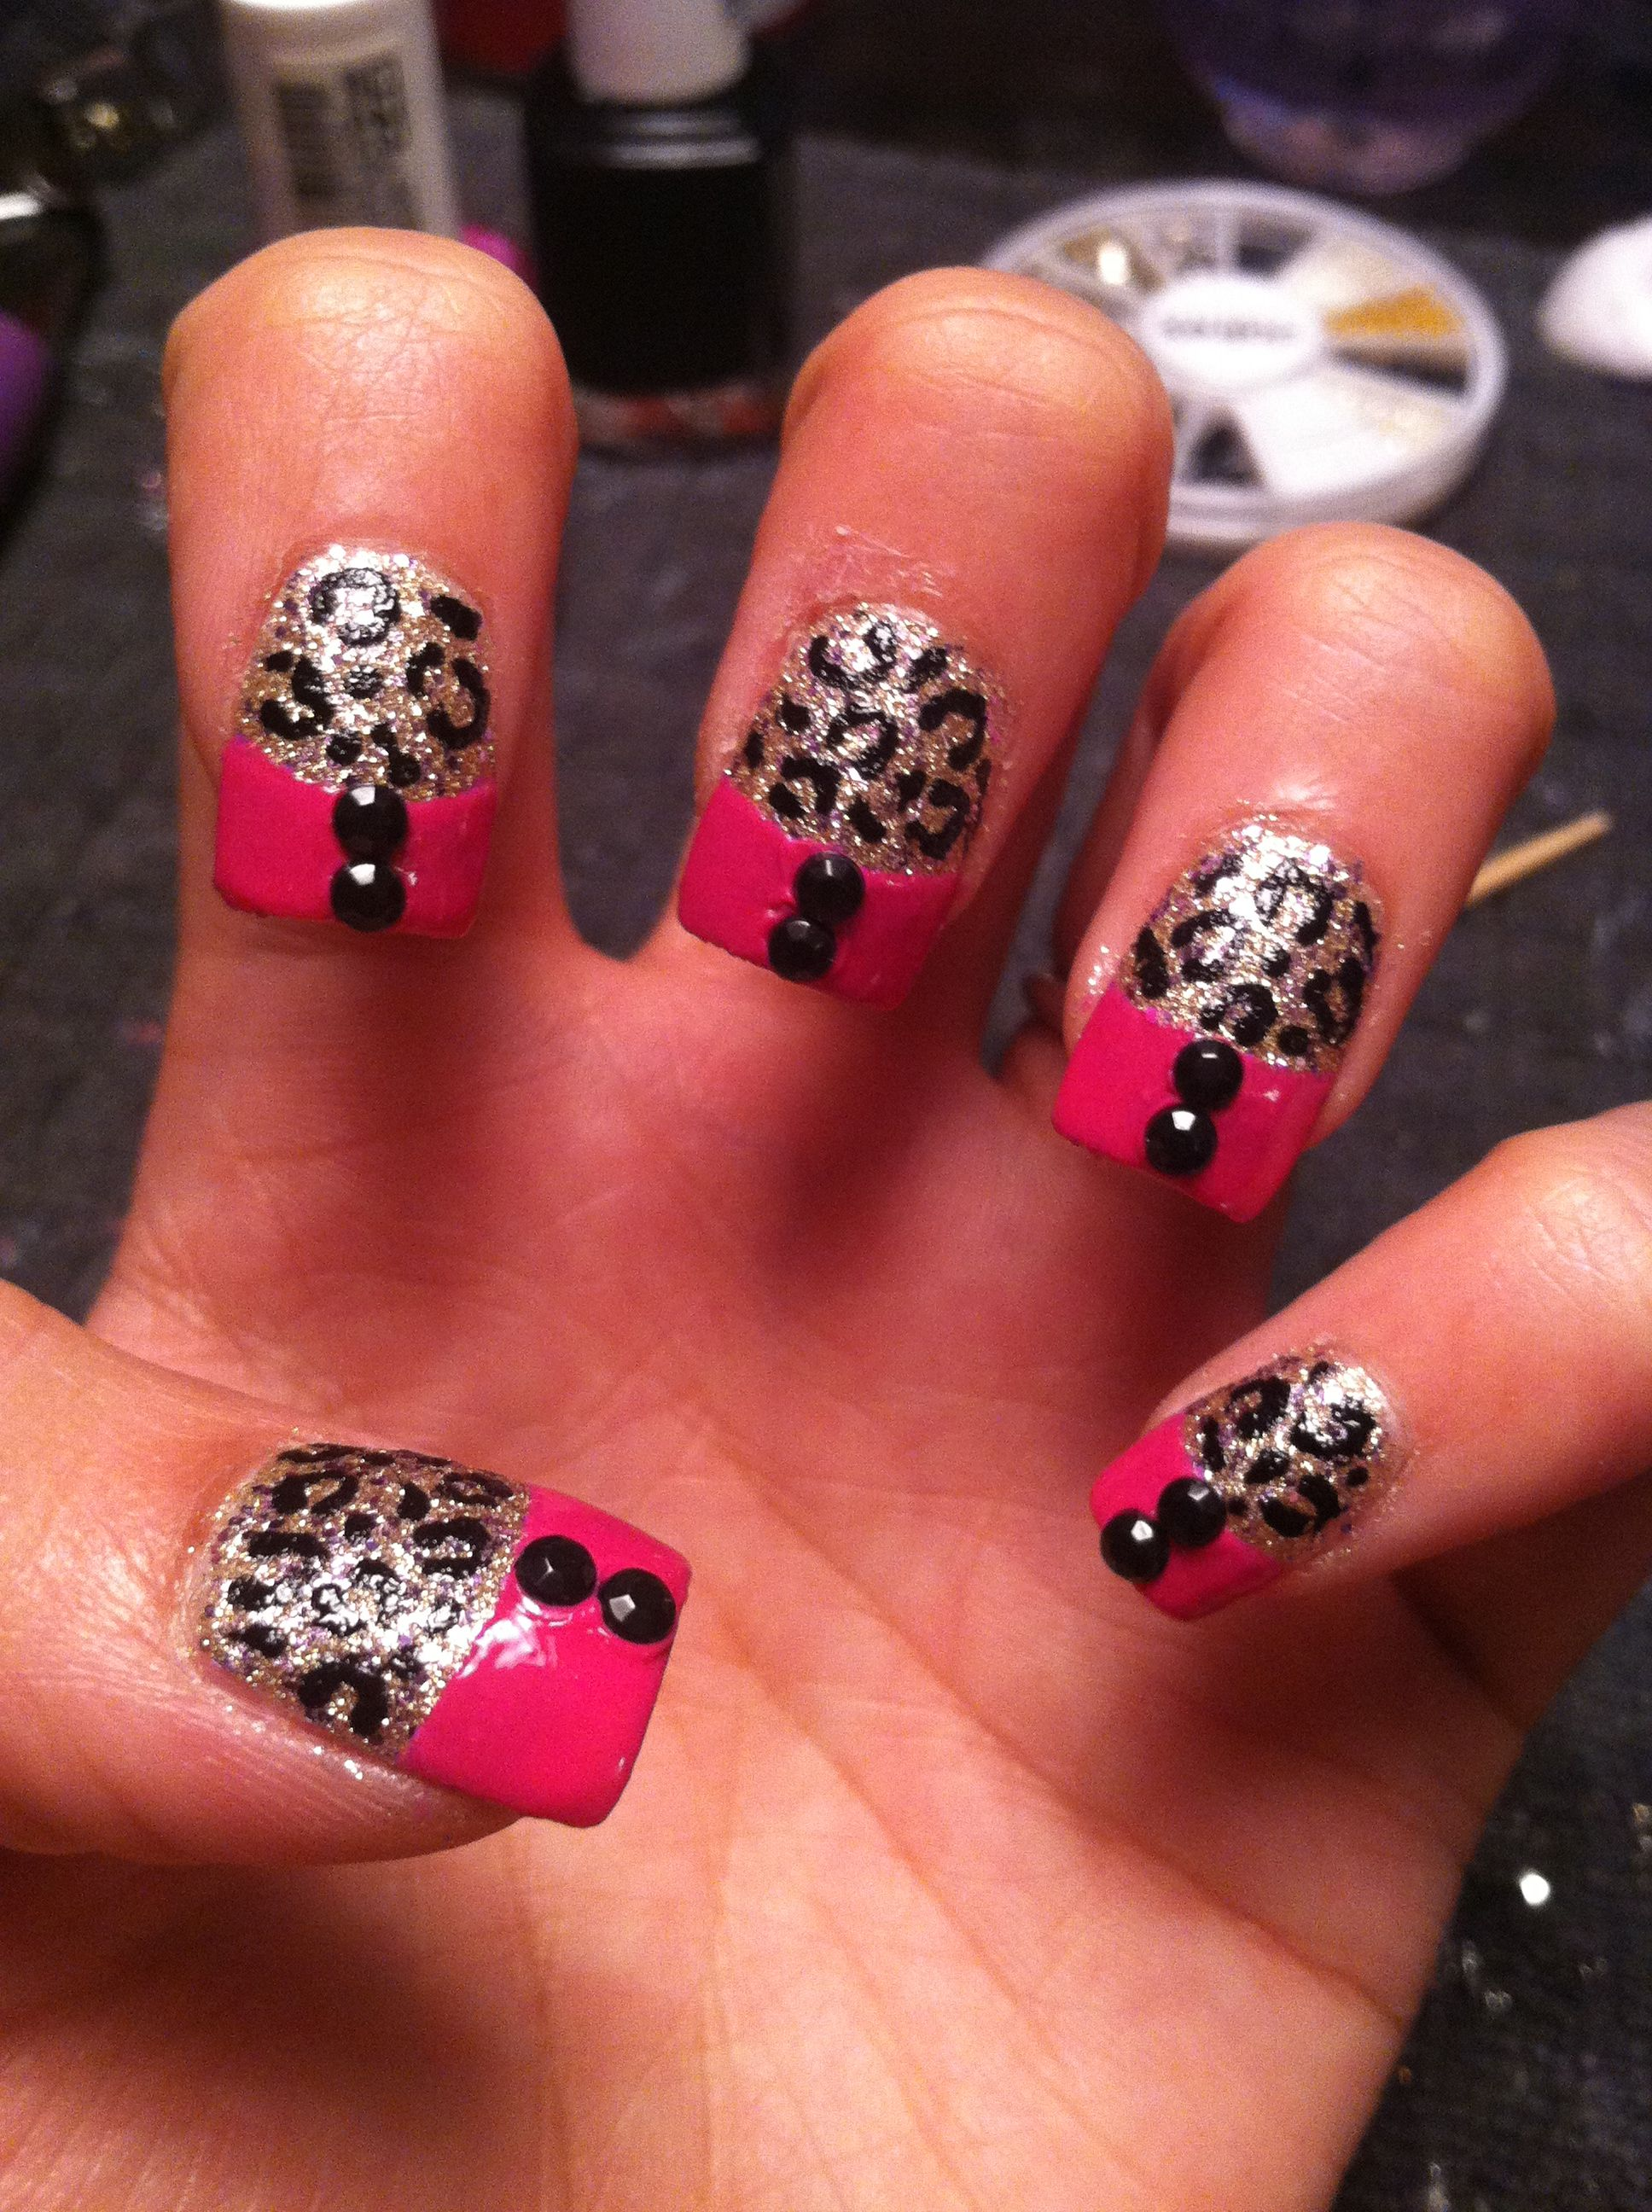 Black And Pink French Tip Nails hot pink with black rh...